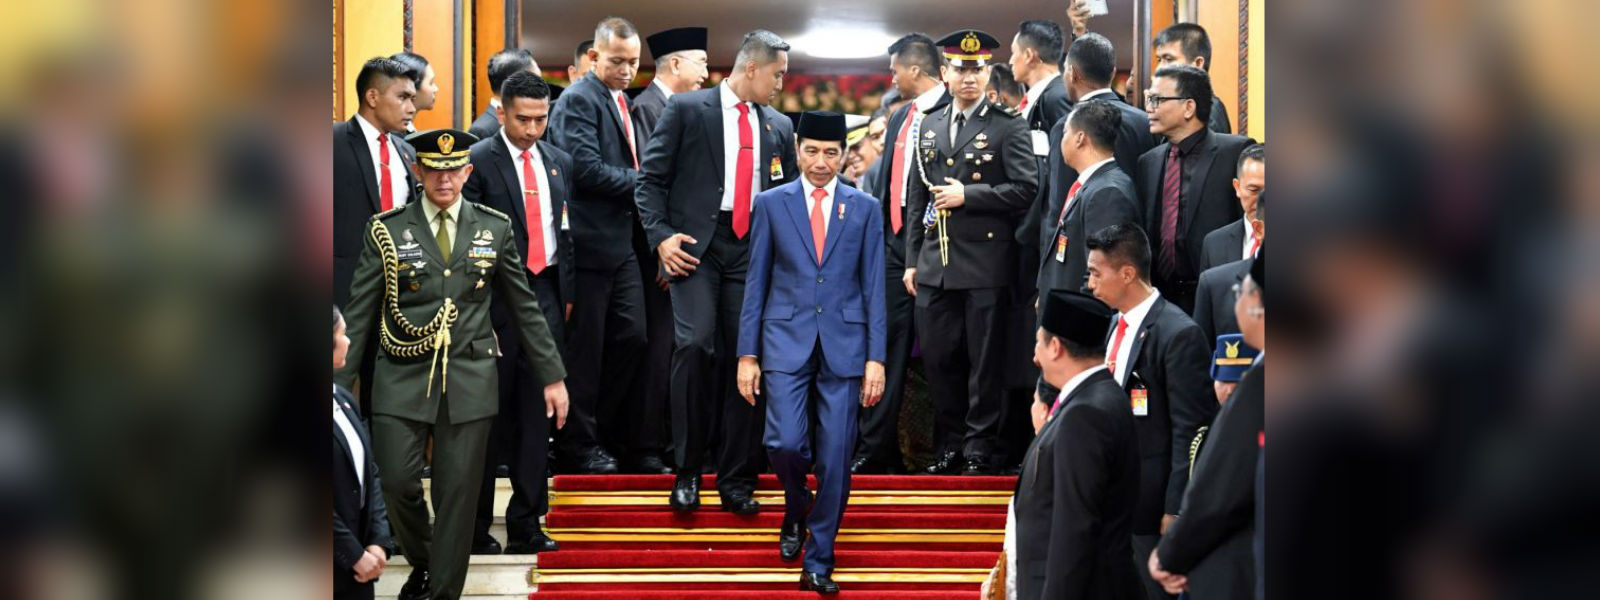 Indonesia cabinet unveiled, includes president's main rival